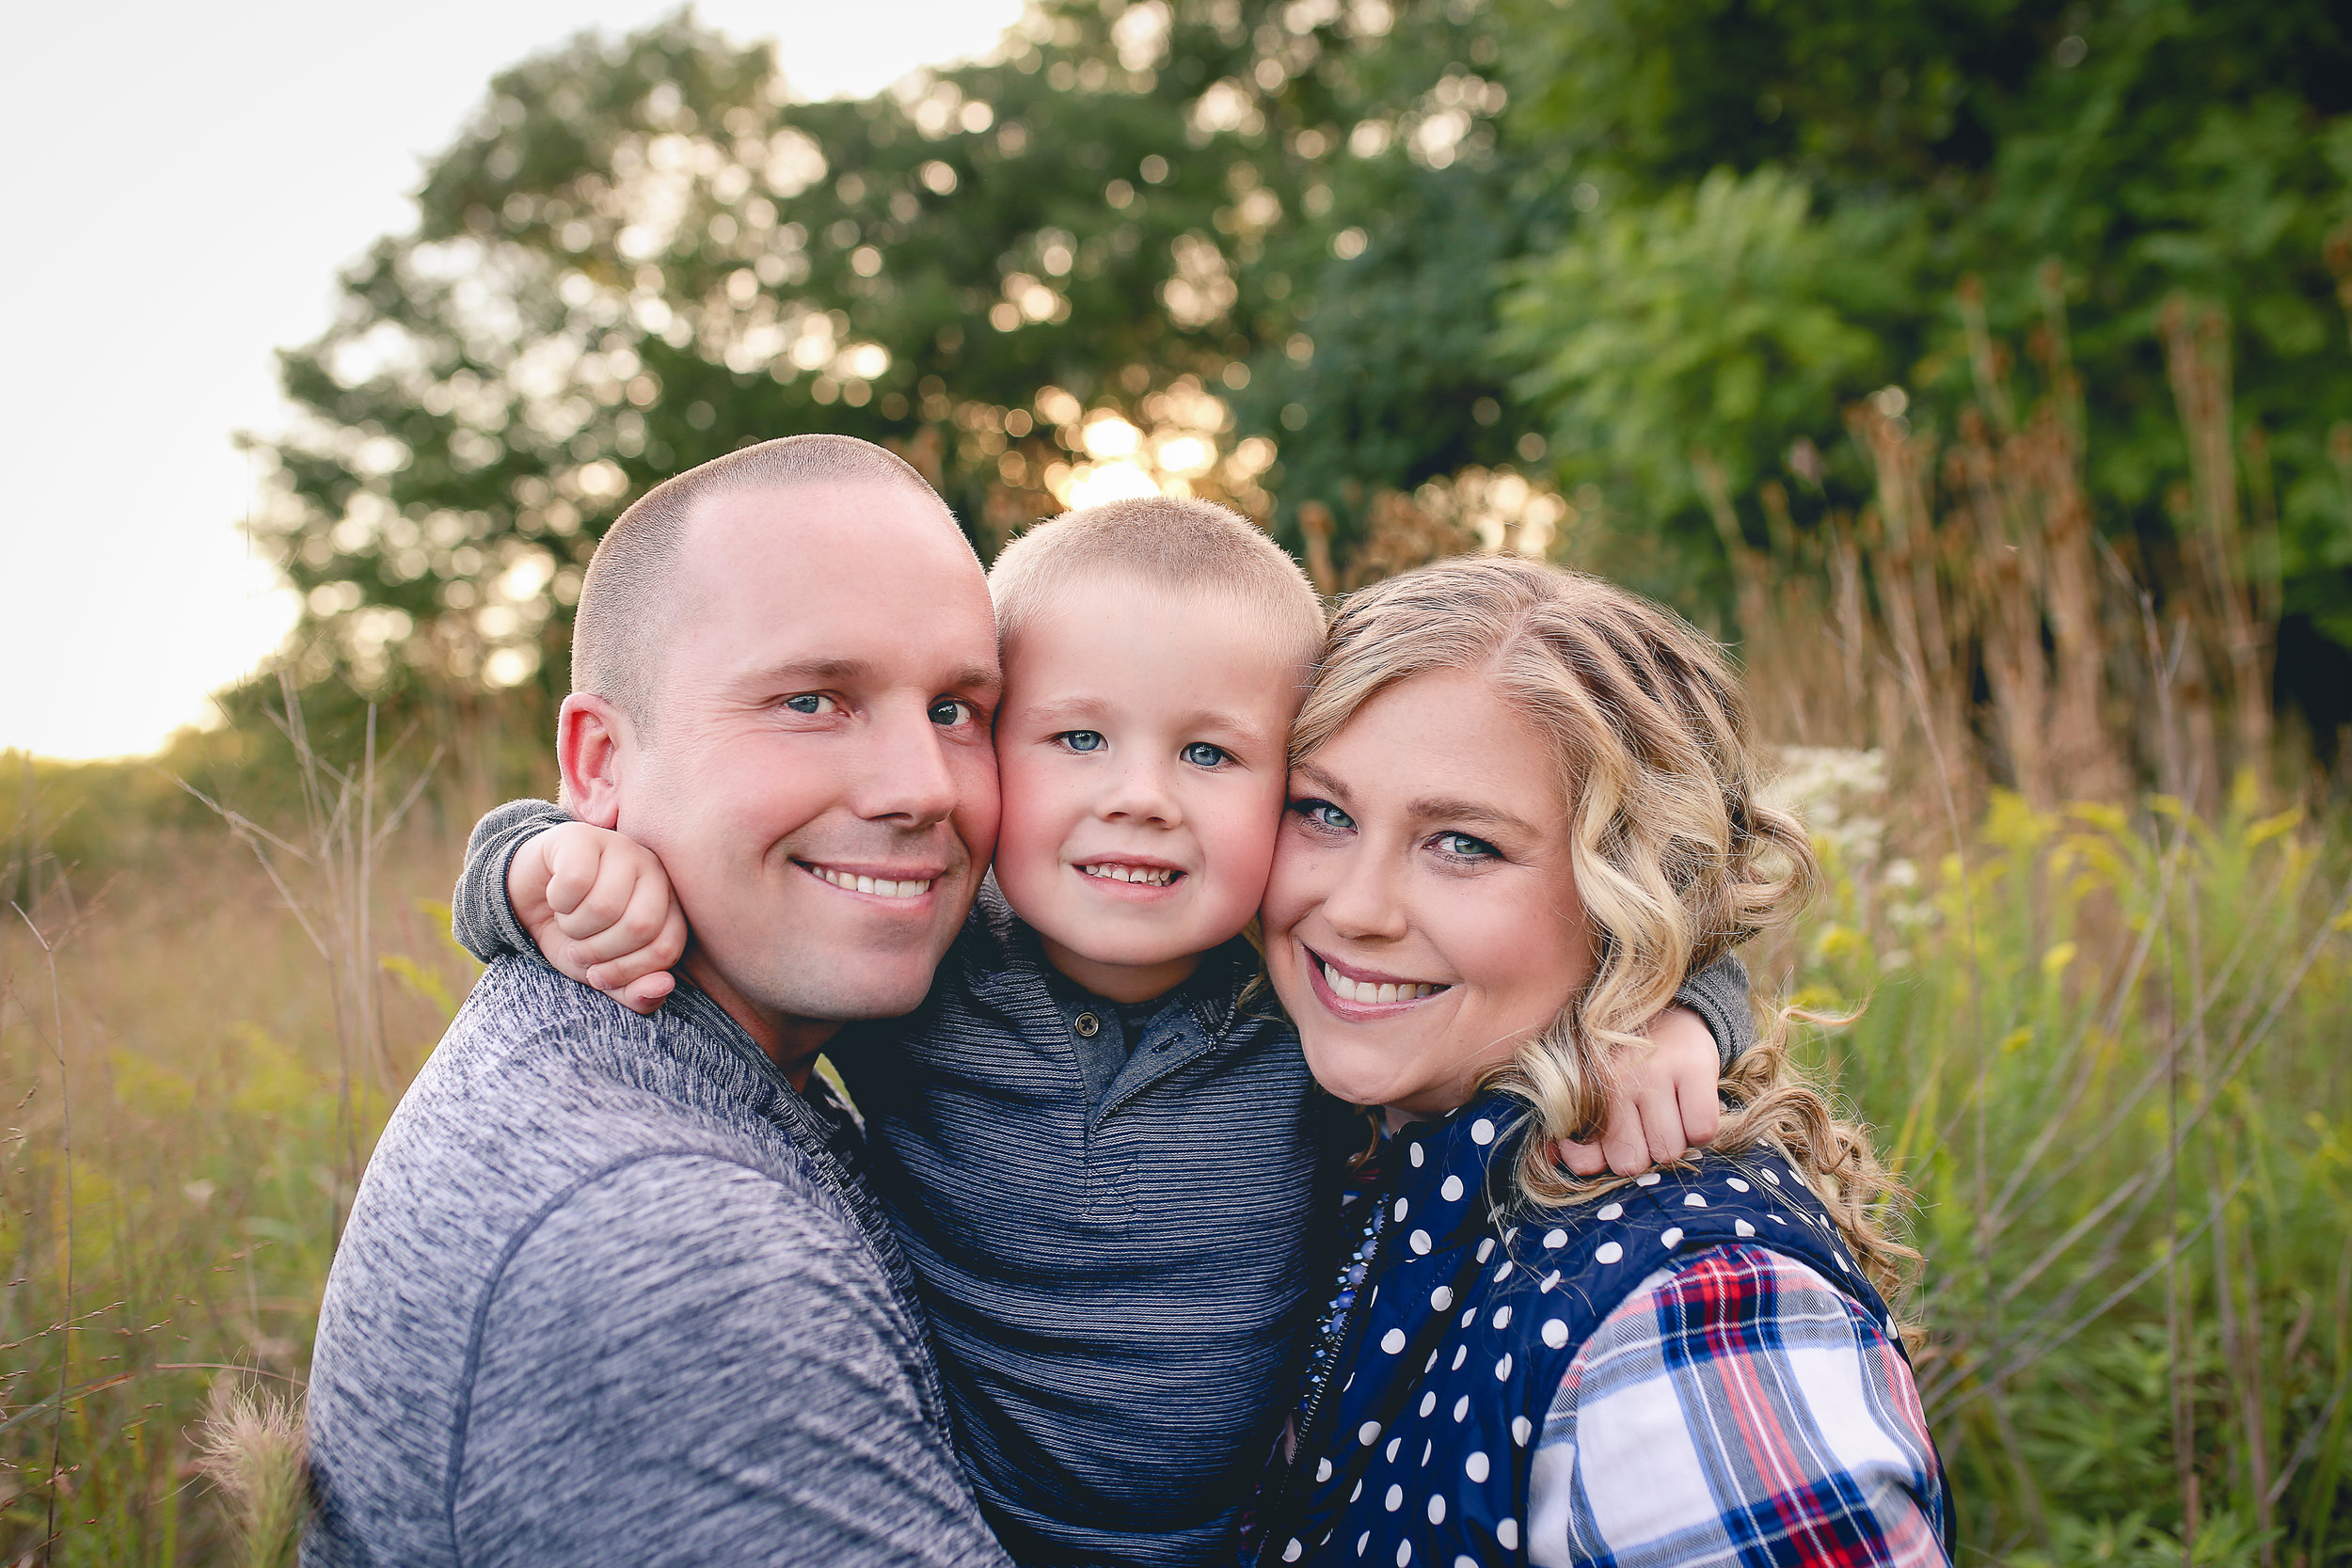 Aren't they just the most adorable family?! And can we talk a little about how well Chelsea did dressing everyone? I love how she mixed patterns-I'm horrible at dressing myself so maybe I just need to keep her on speed dial! Oh, and this may just be my absolute favorite image of them. I mean, seriously?!